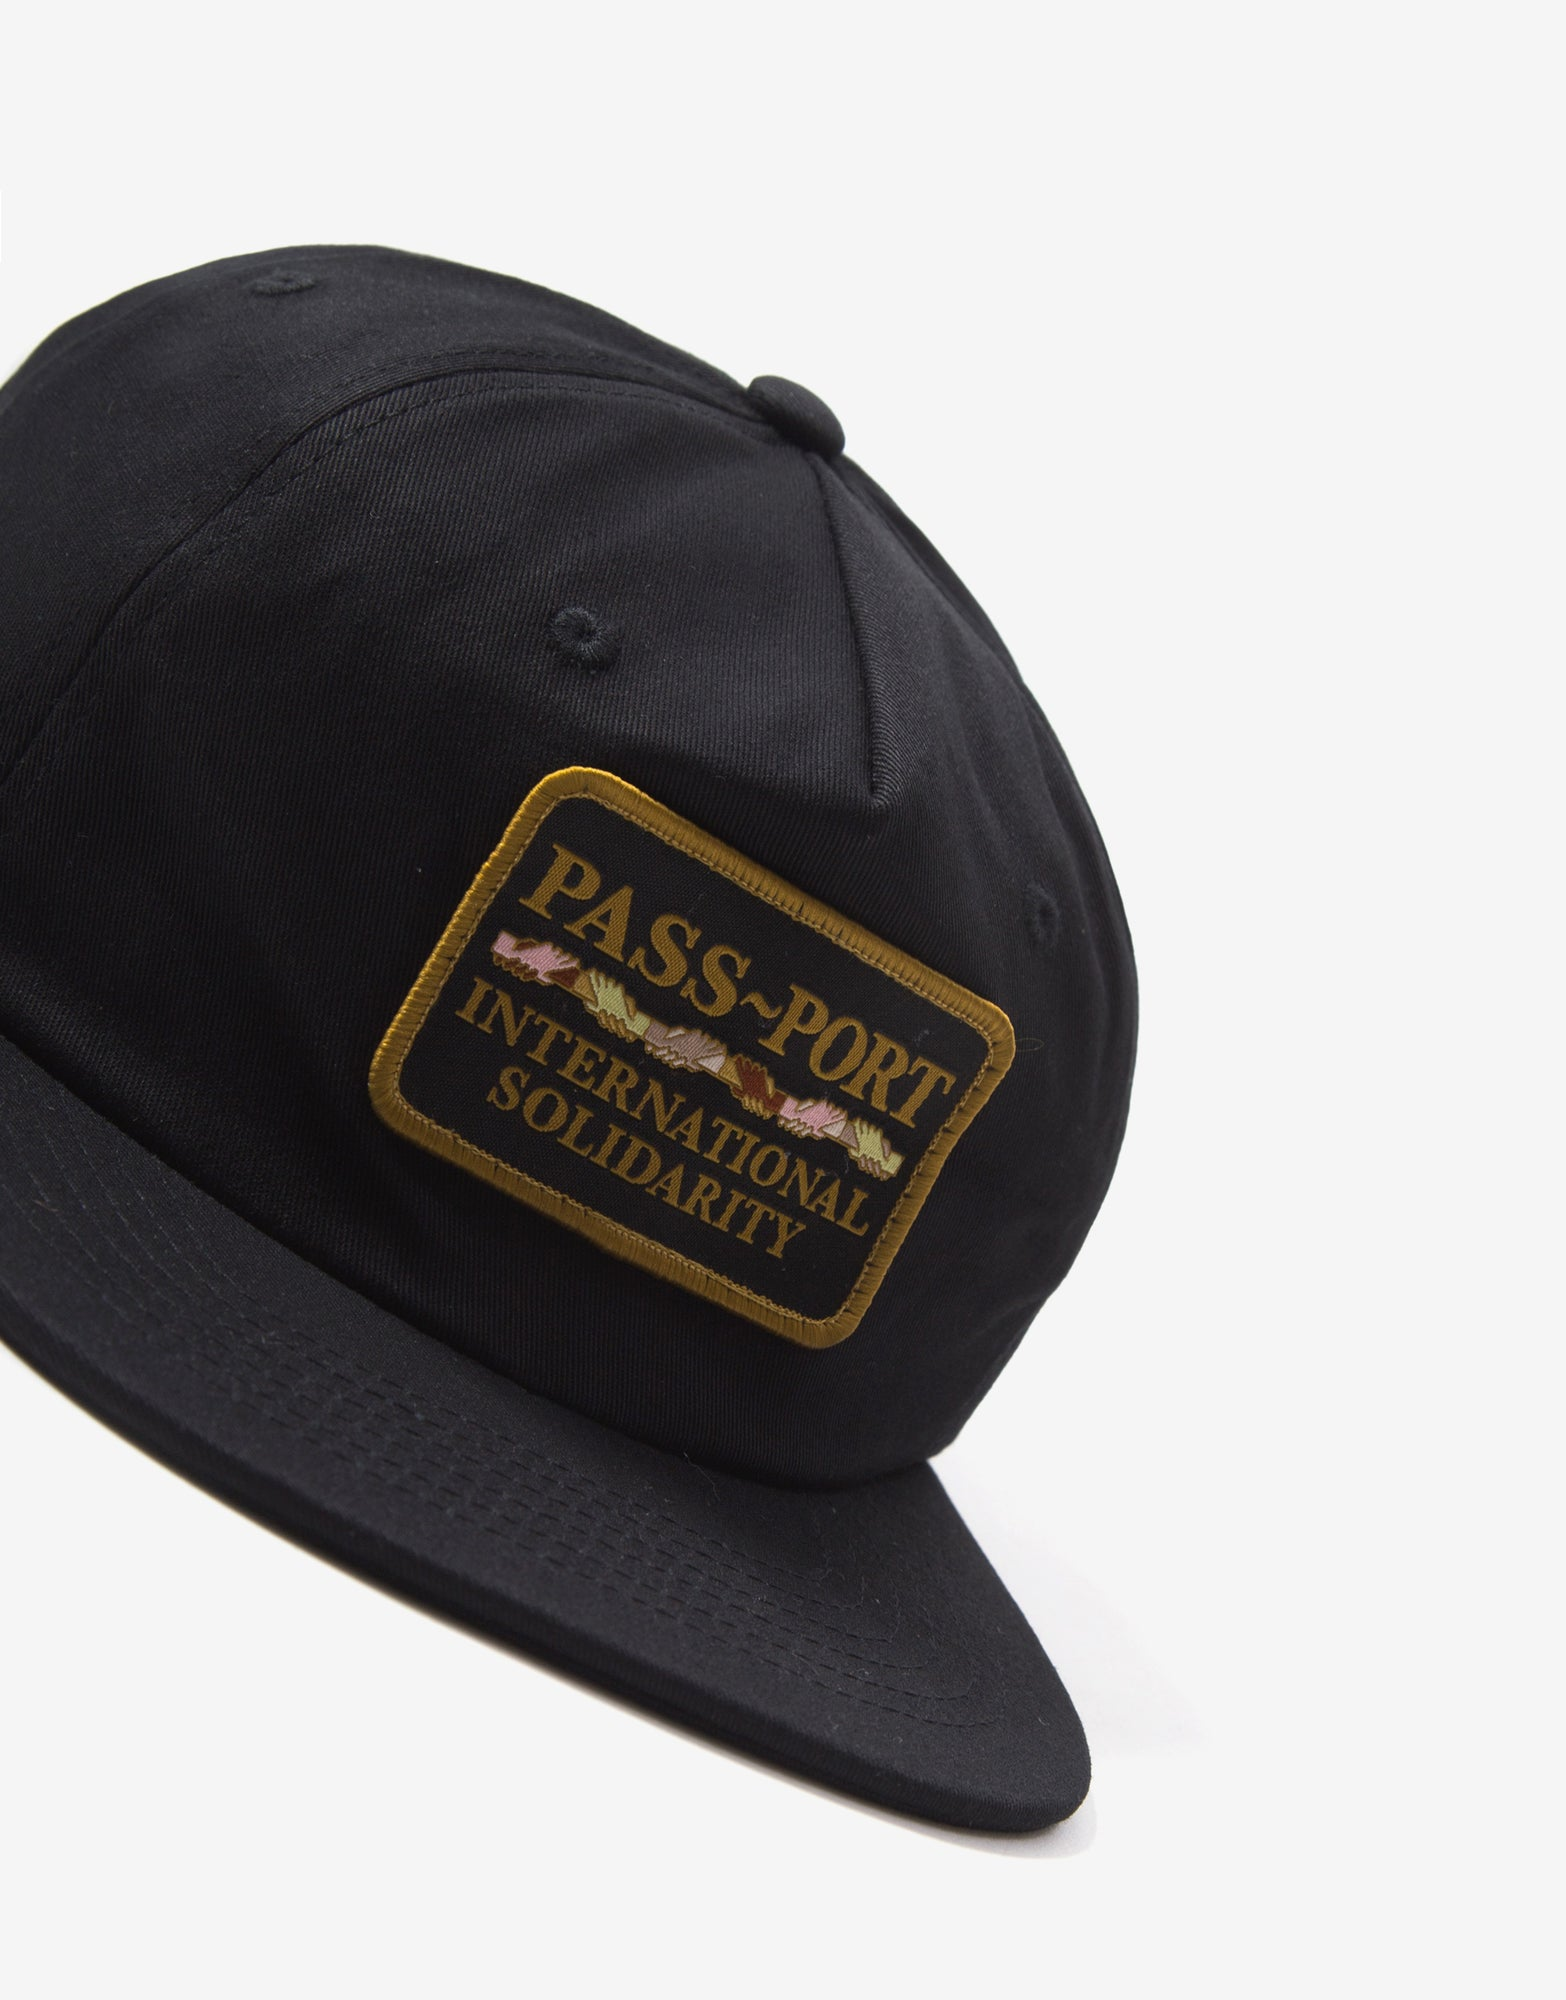 Pass Port Intersolid Cap - Black/Black